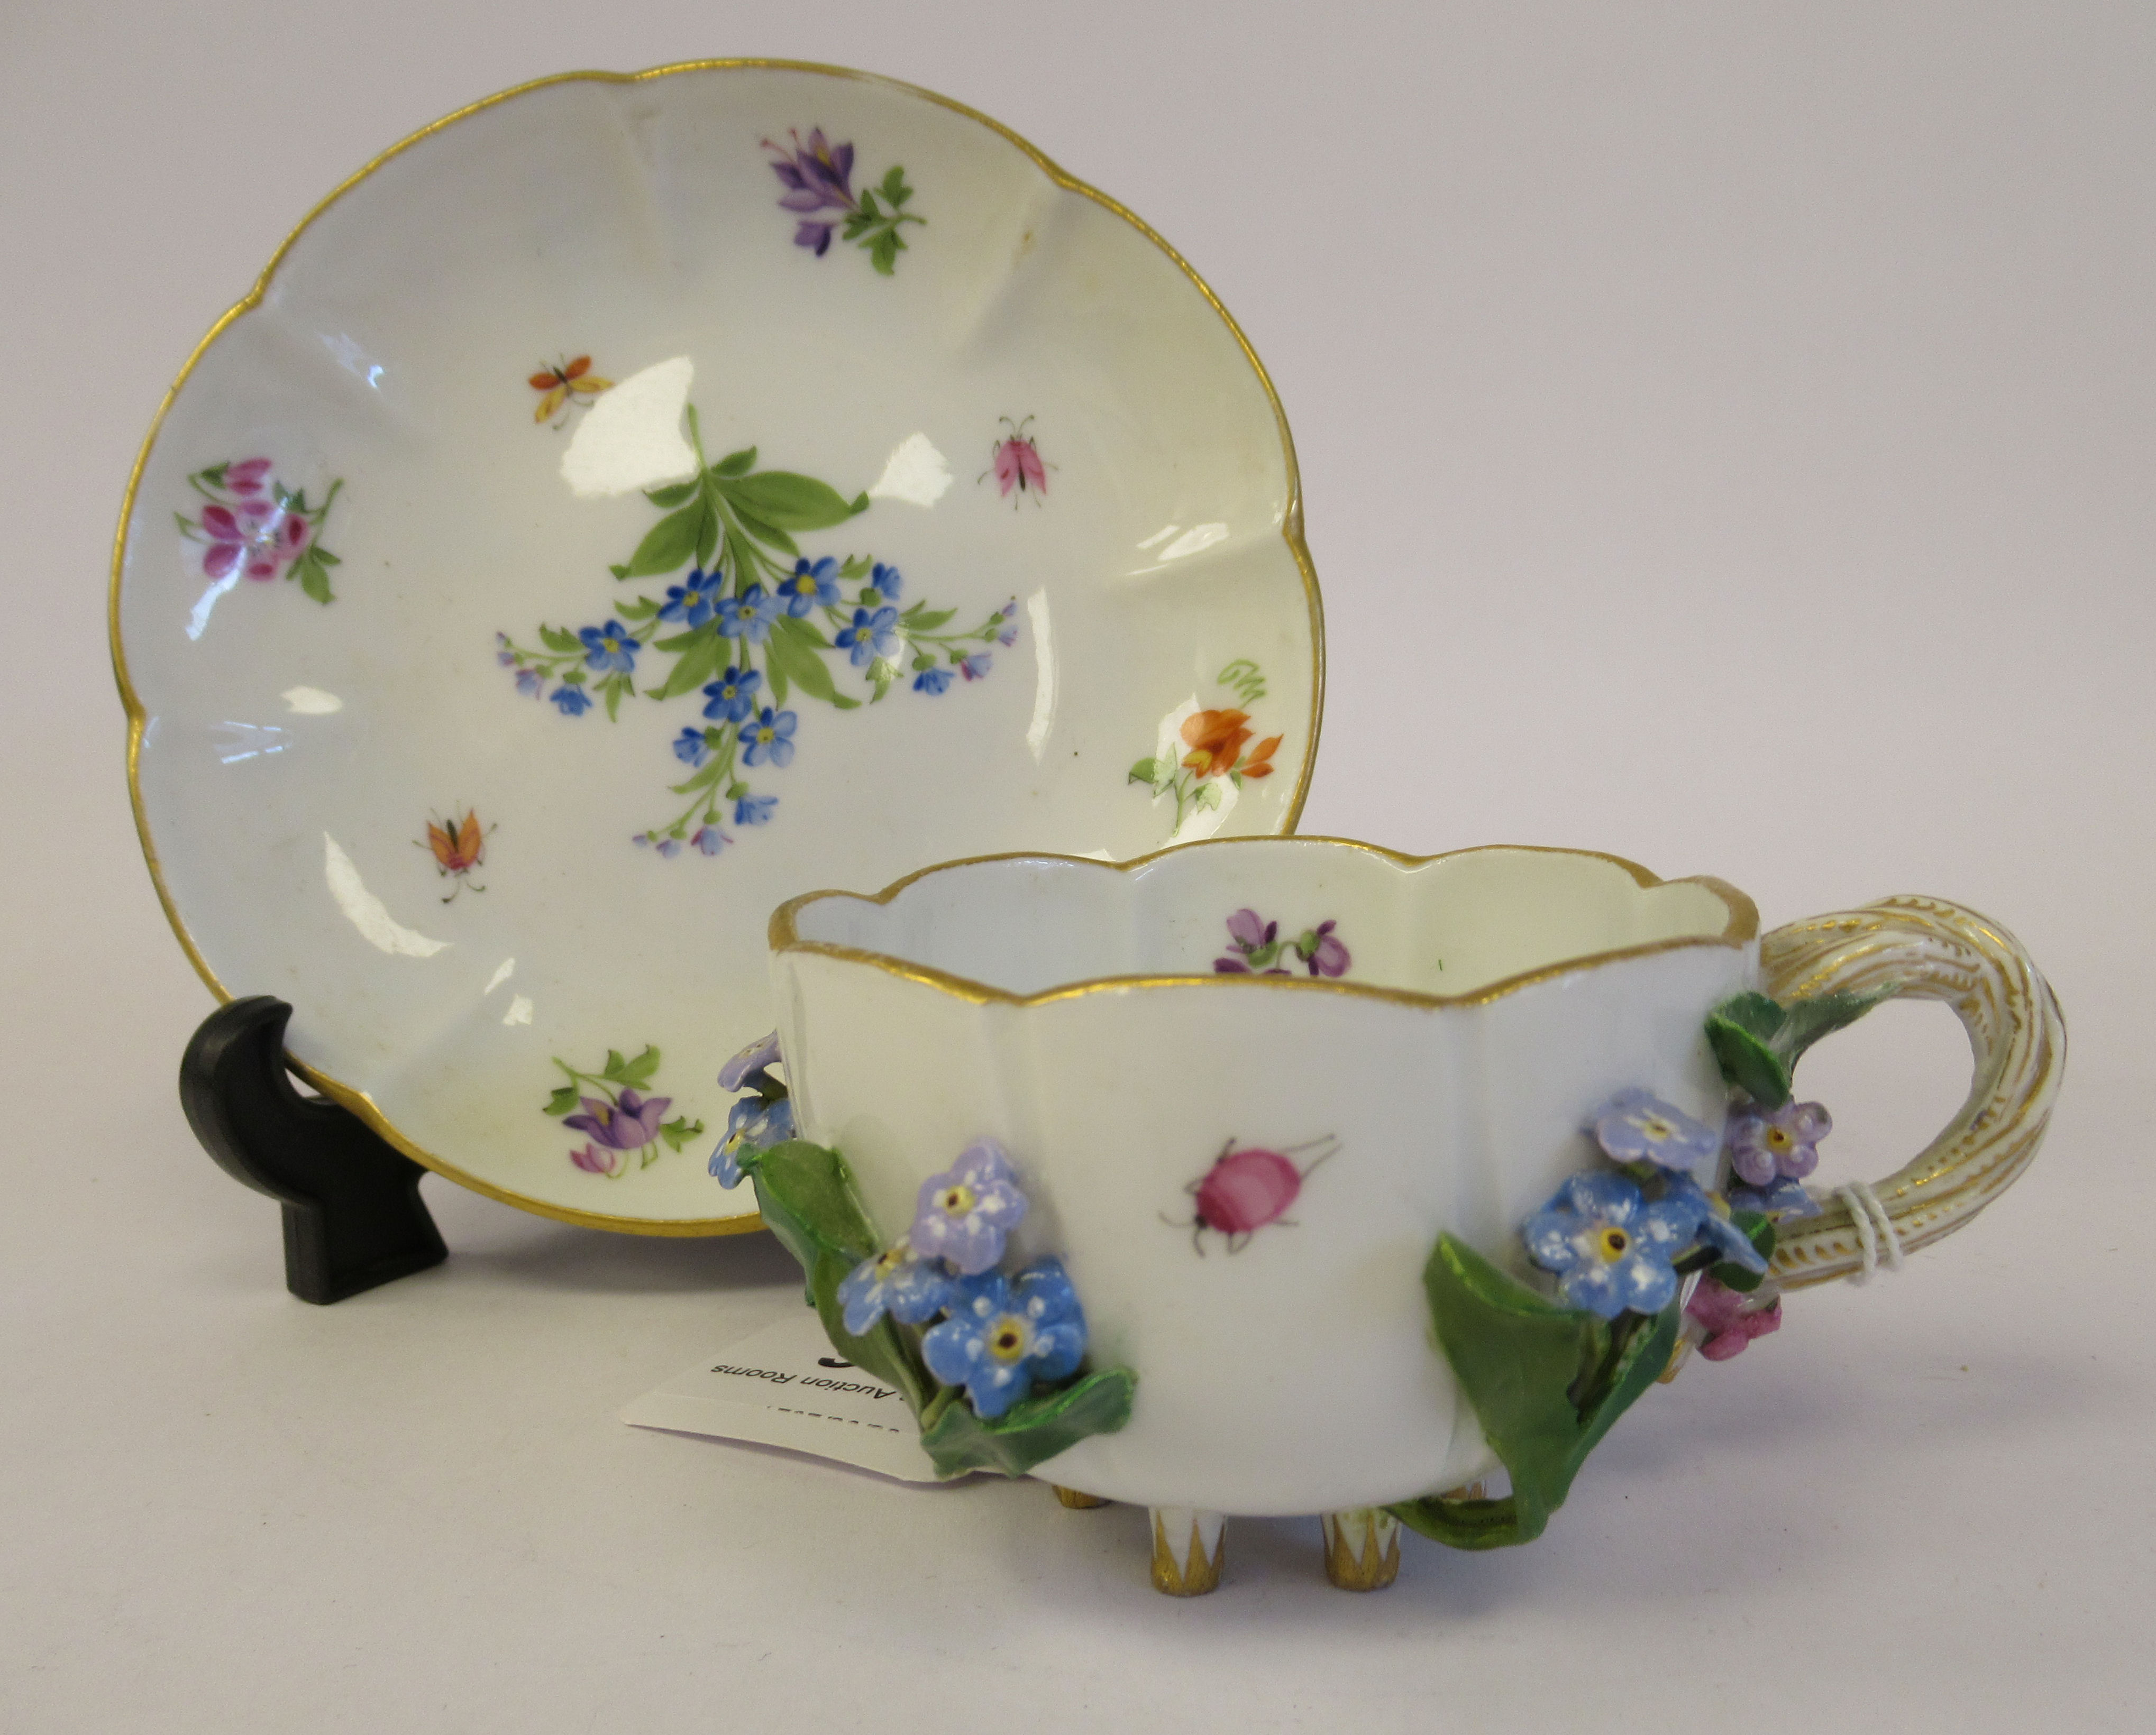 A 19thC Meissen porcelain cup and saucer, having an entwined twig handle, decorated with encrusted